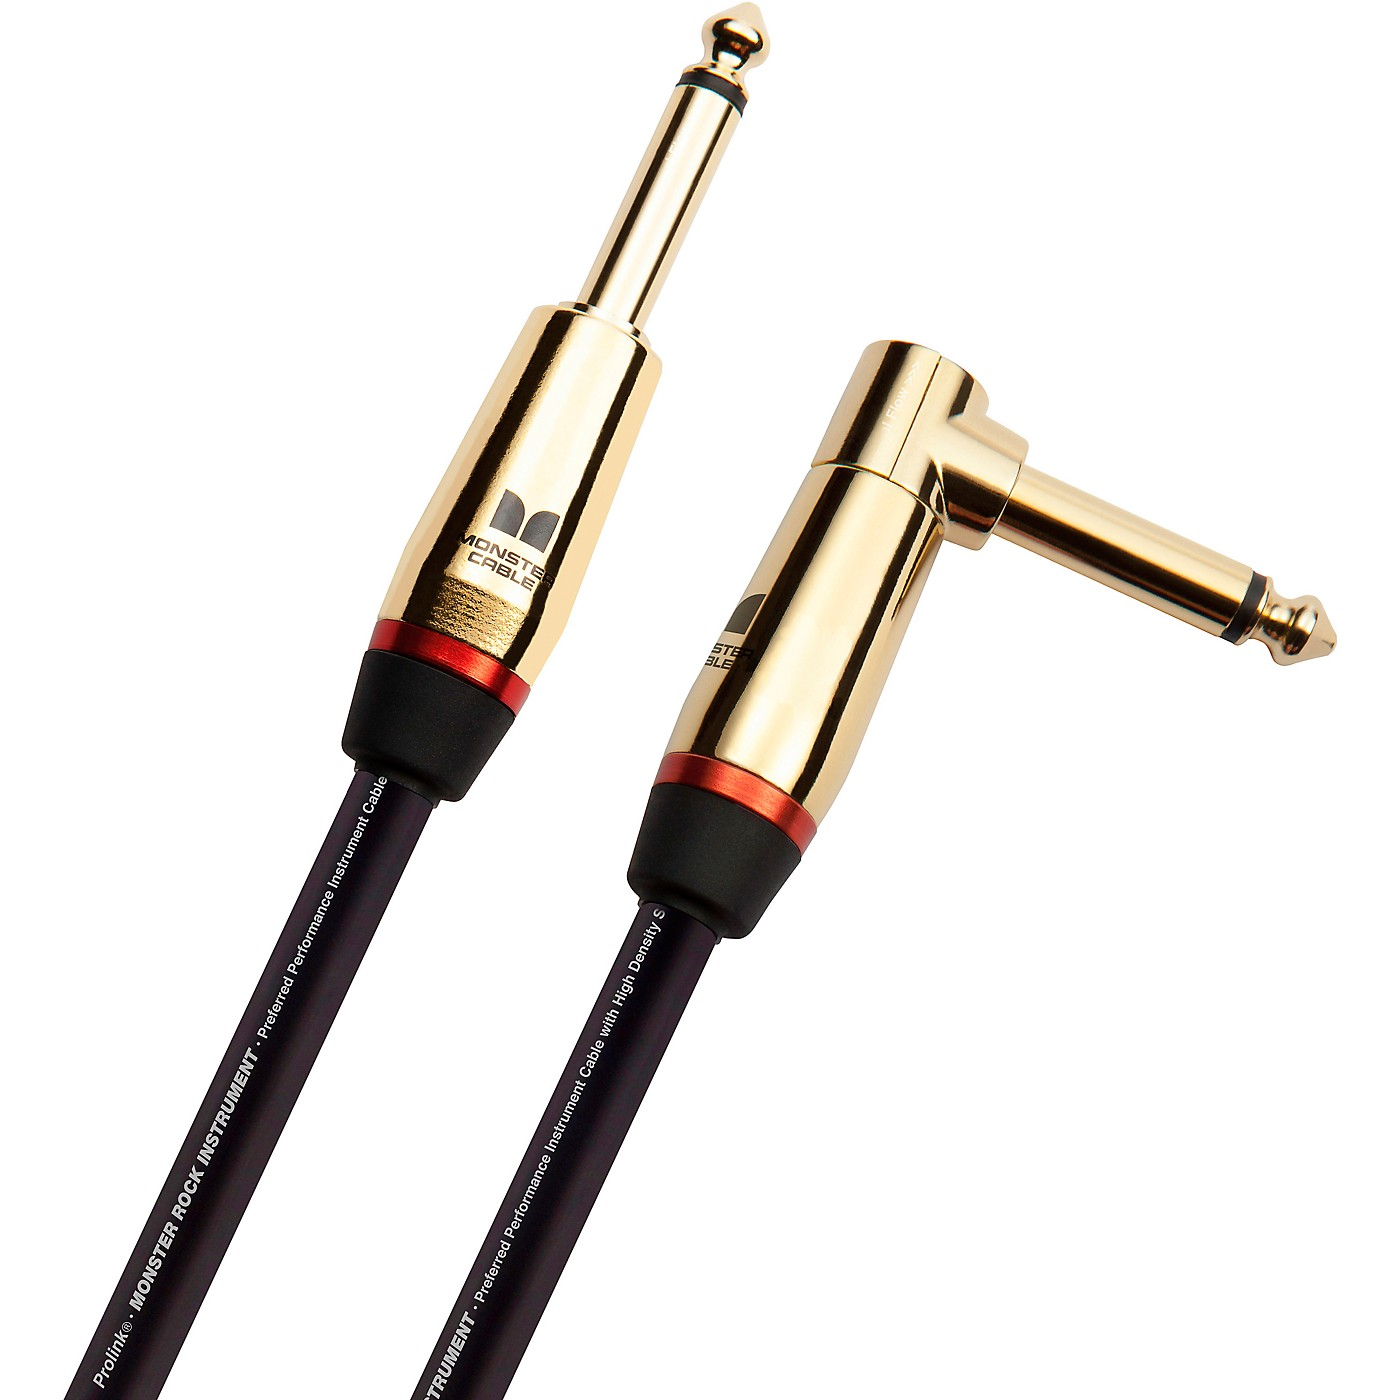 Monster Cable Prolink Rock Pro Audio Instrument Cable, Right Angle to Straight thumbnail